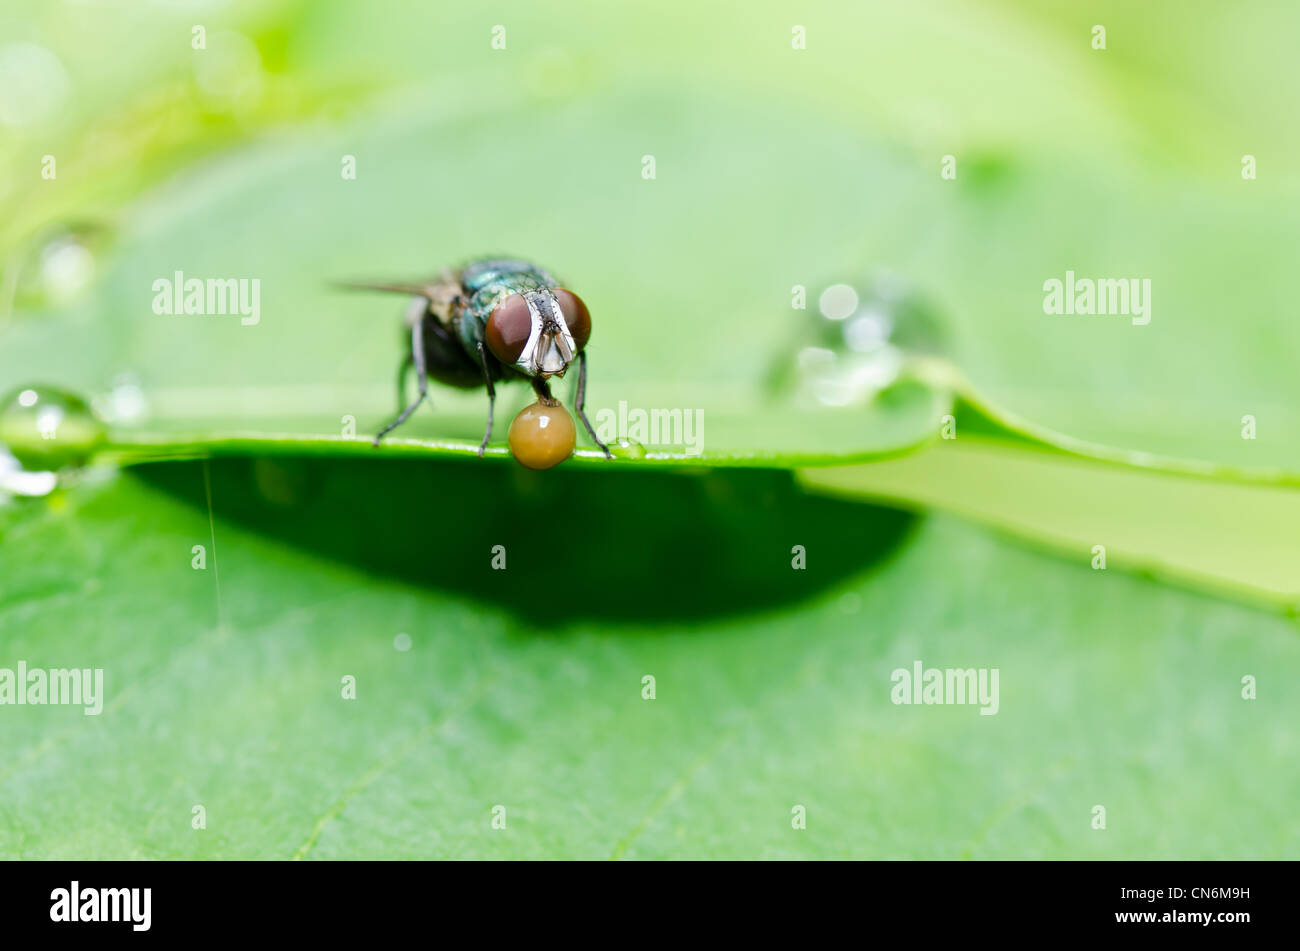 fly in green nature or in the city - Stock Image